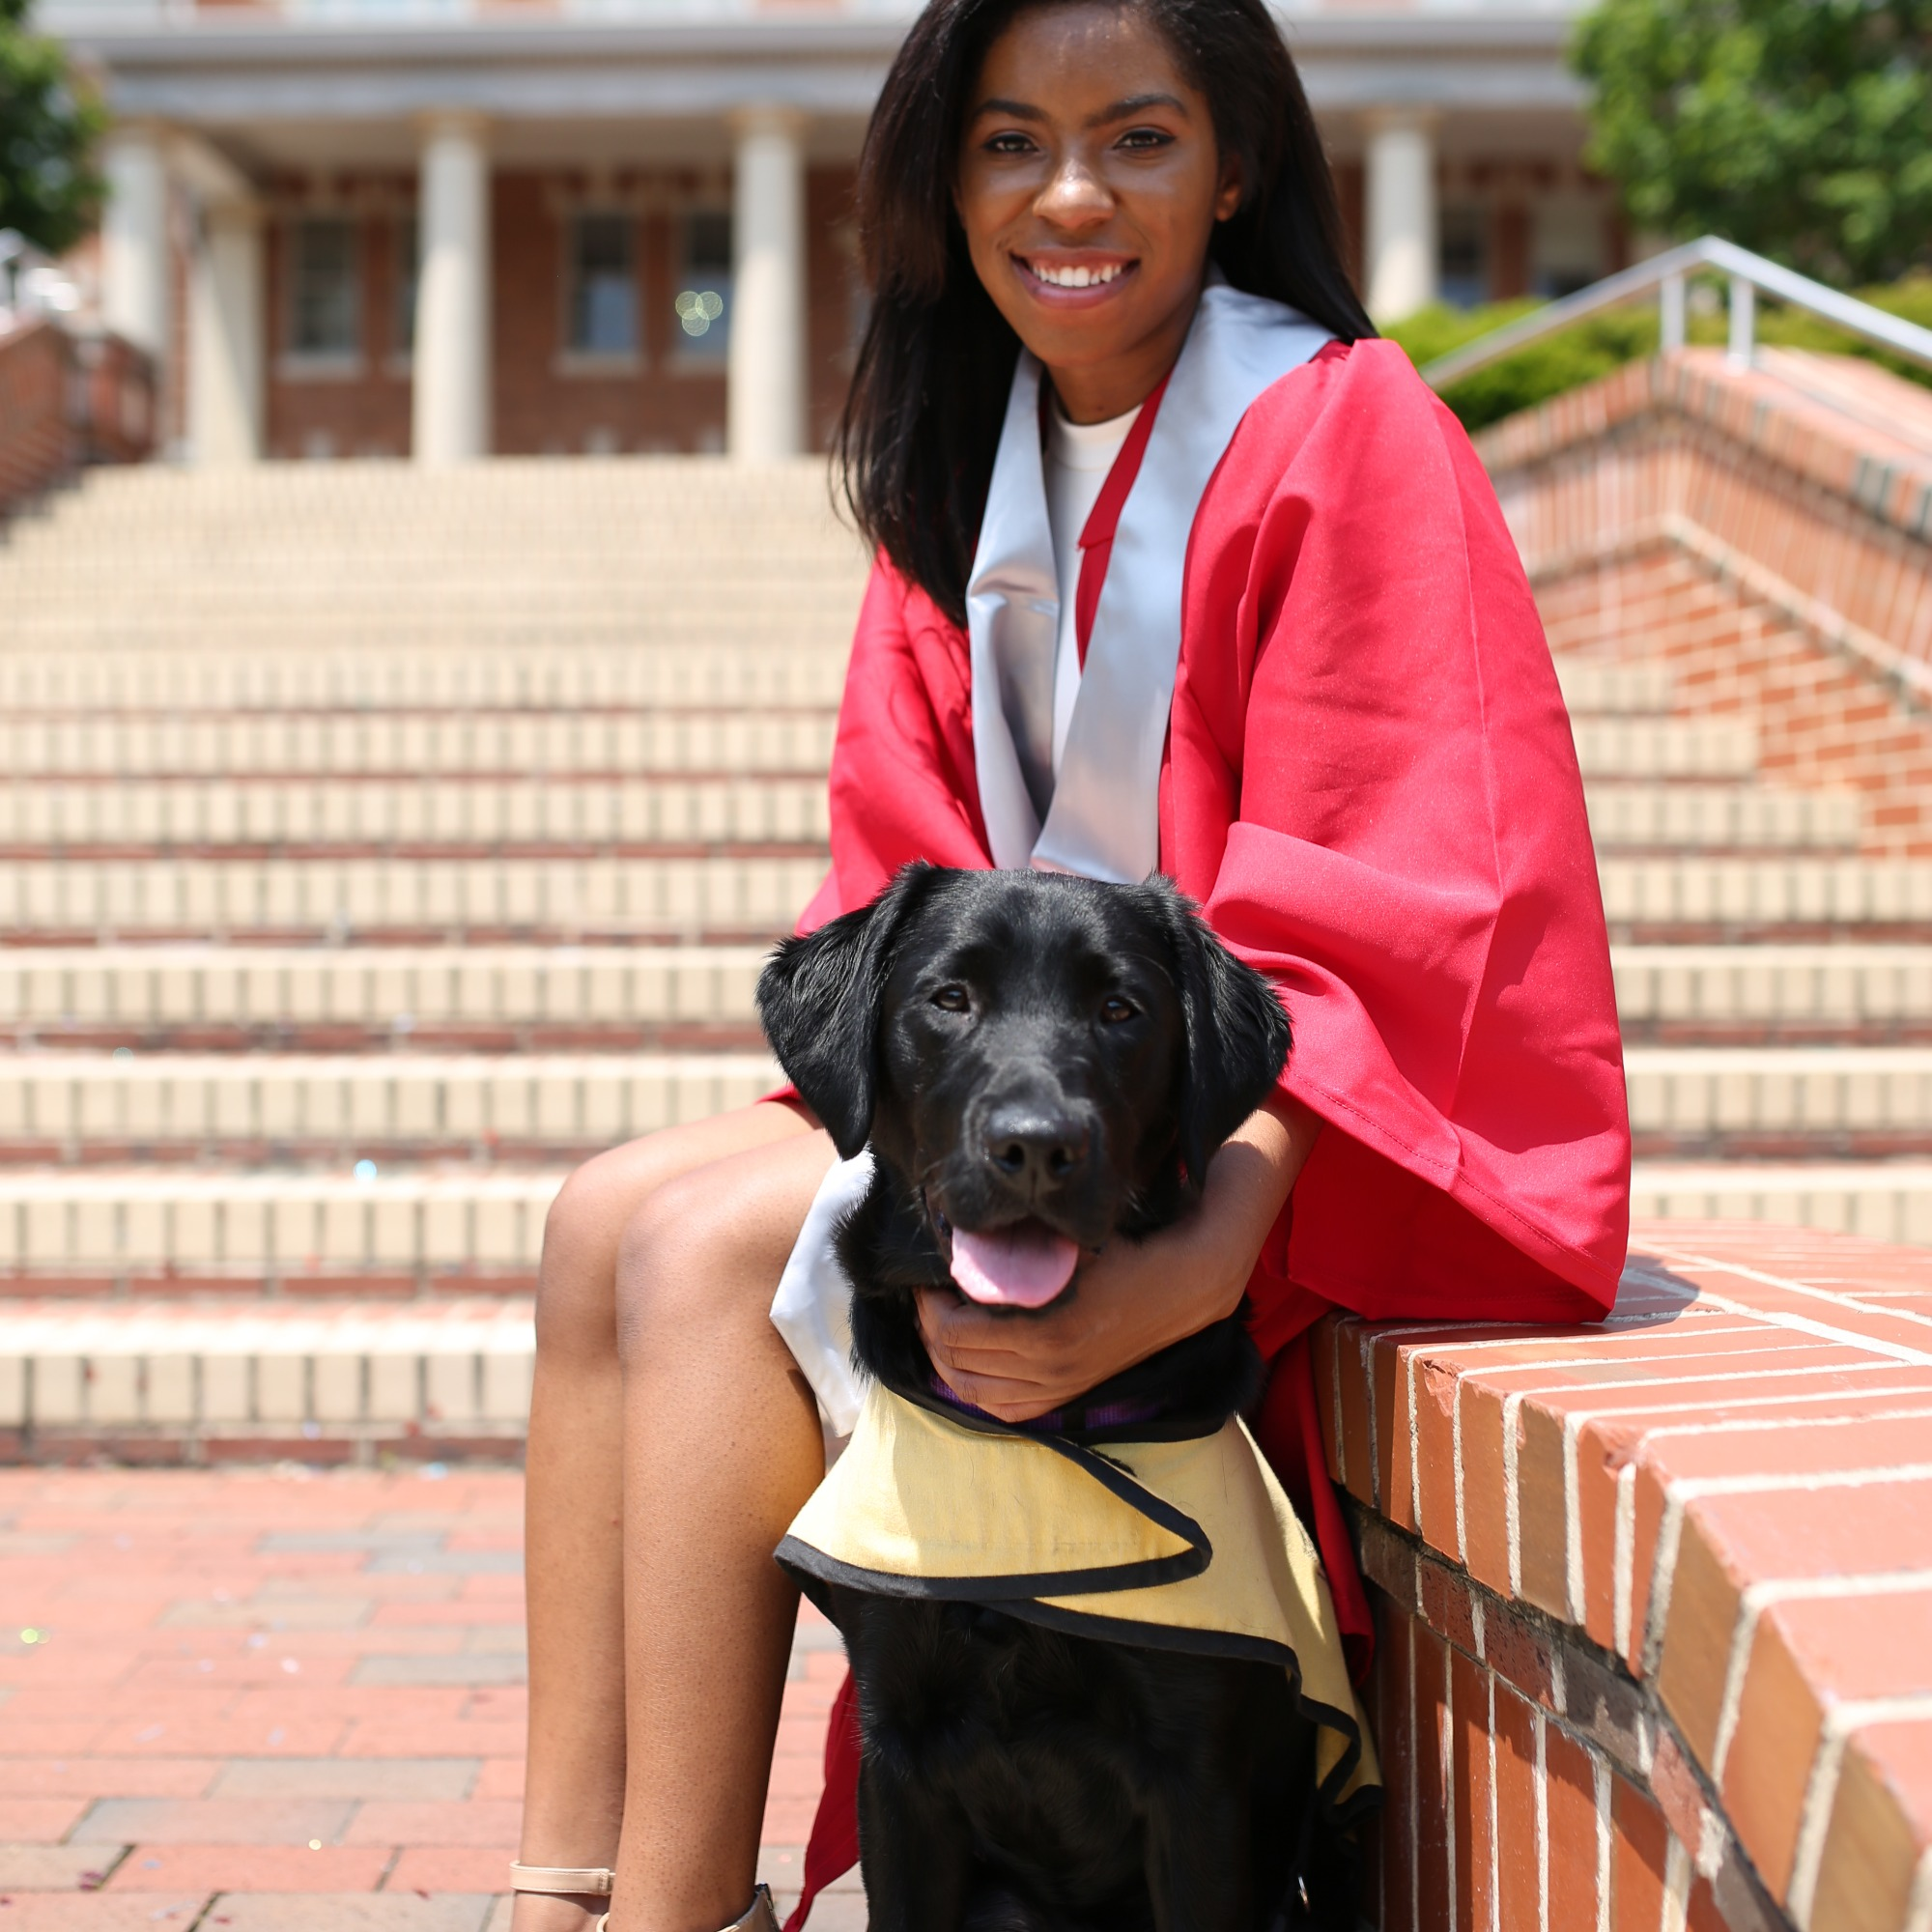 Erin sits on a ledge in her red graduation regalia with a black lab in a yellow vest sitting in fron